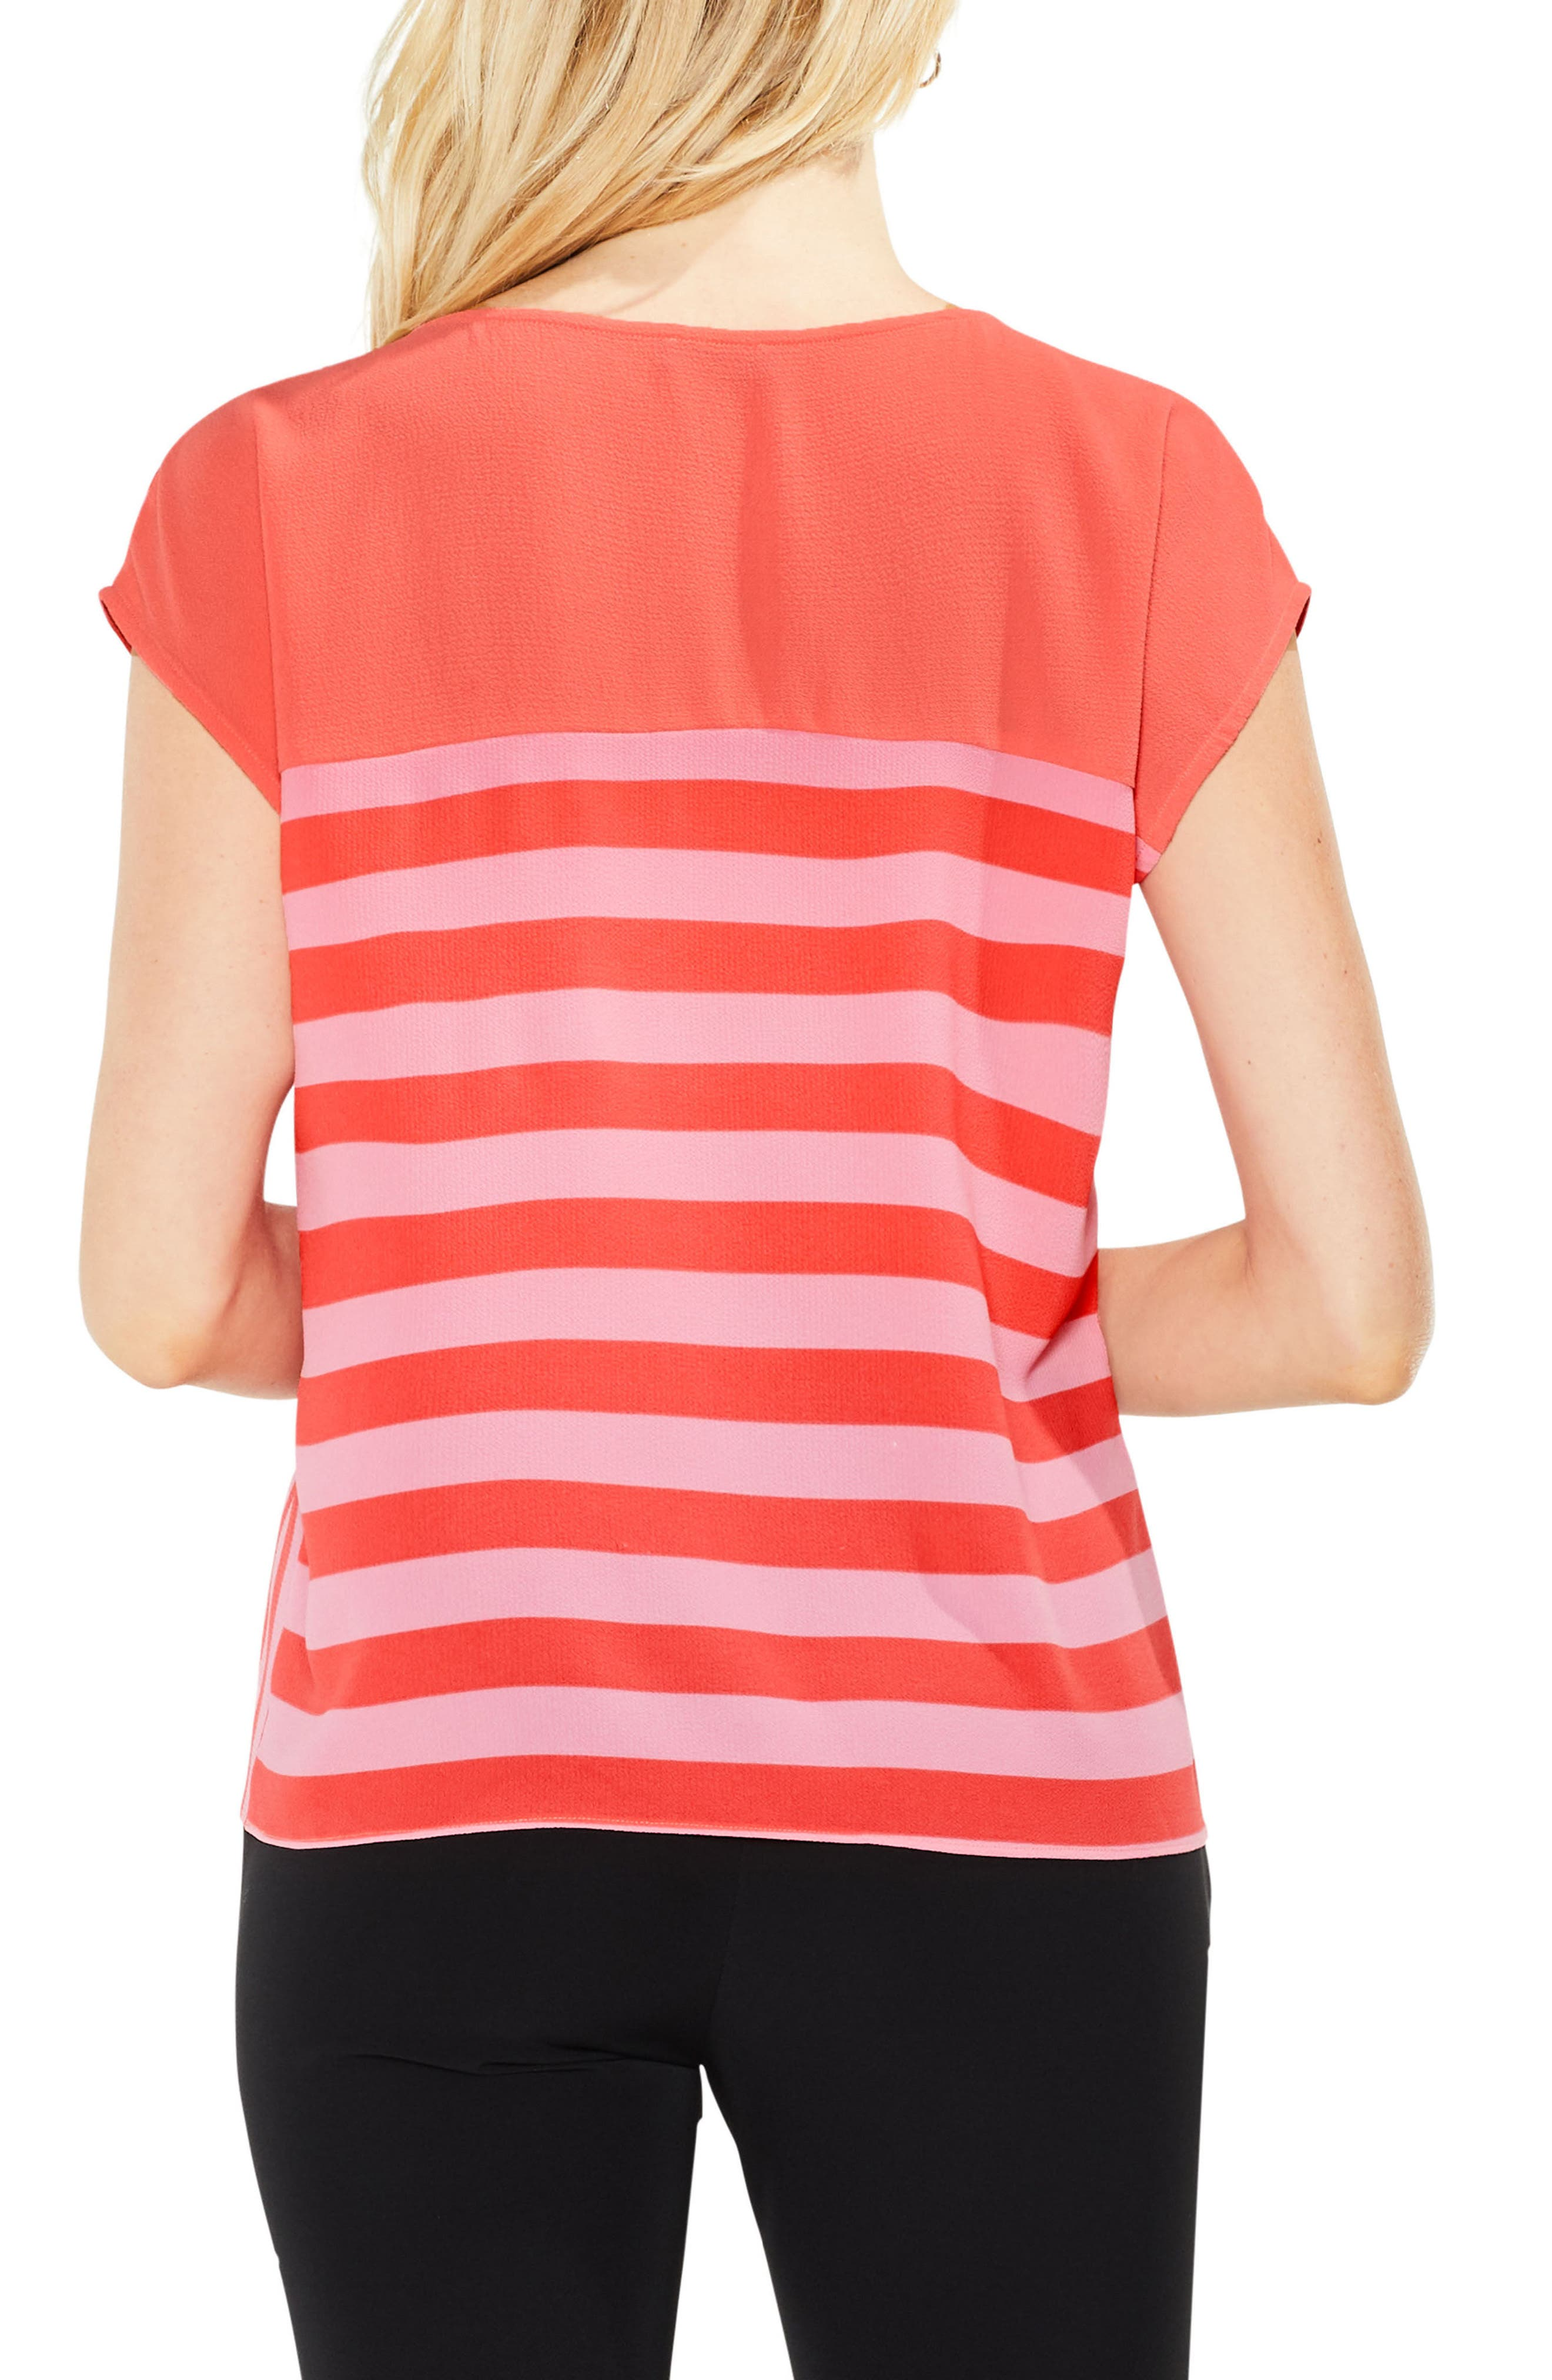 Alternate Image 2  - Vince Camuto Mixed Stripe Top